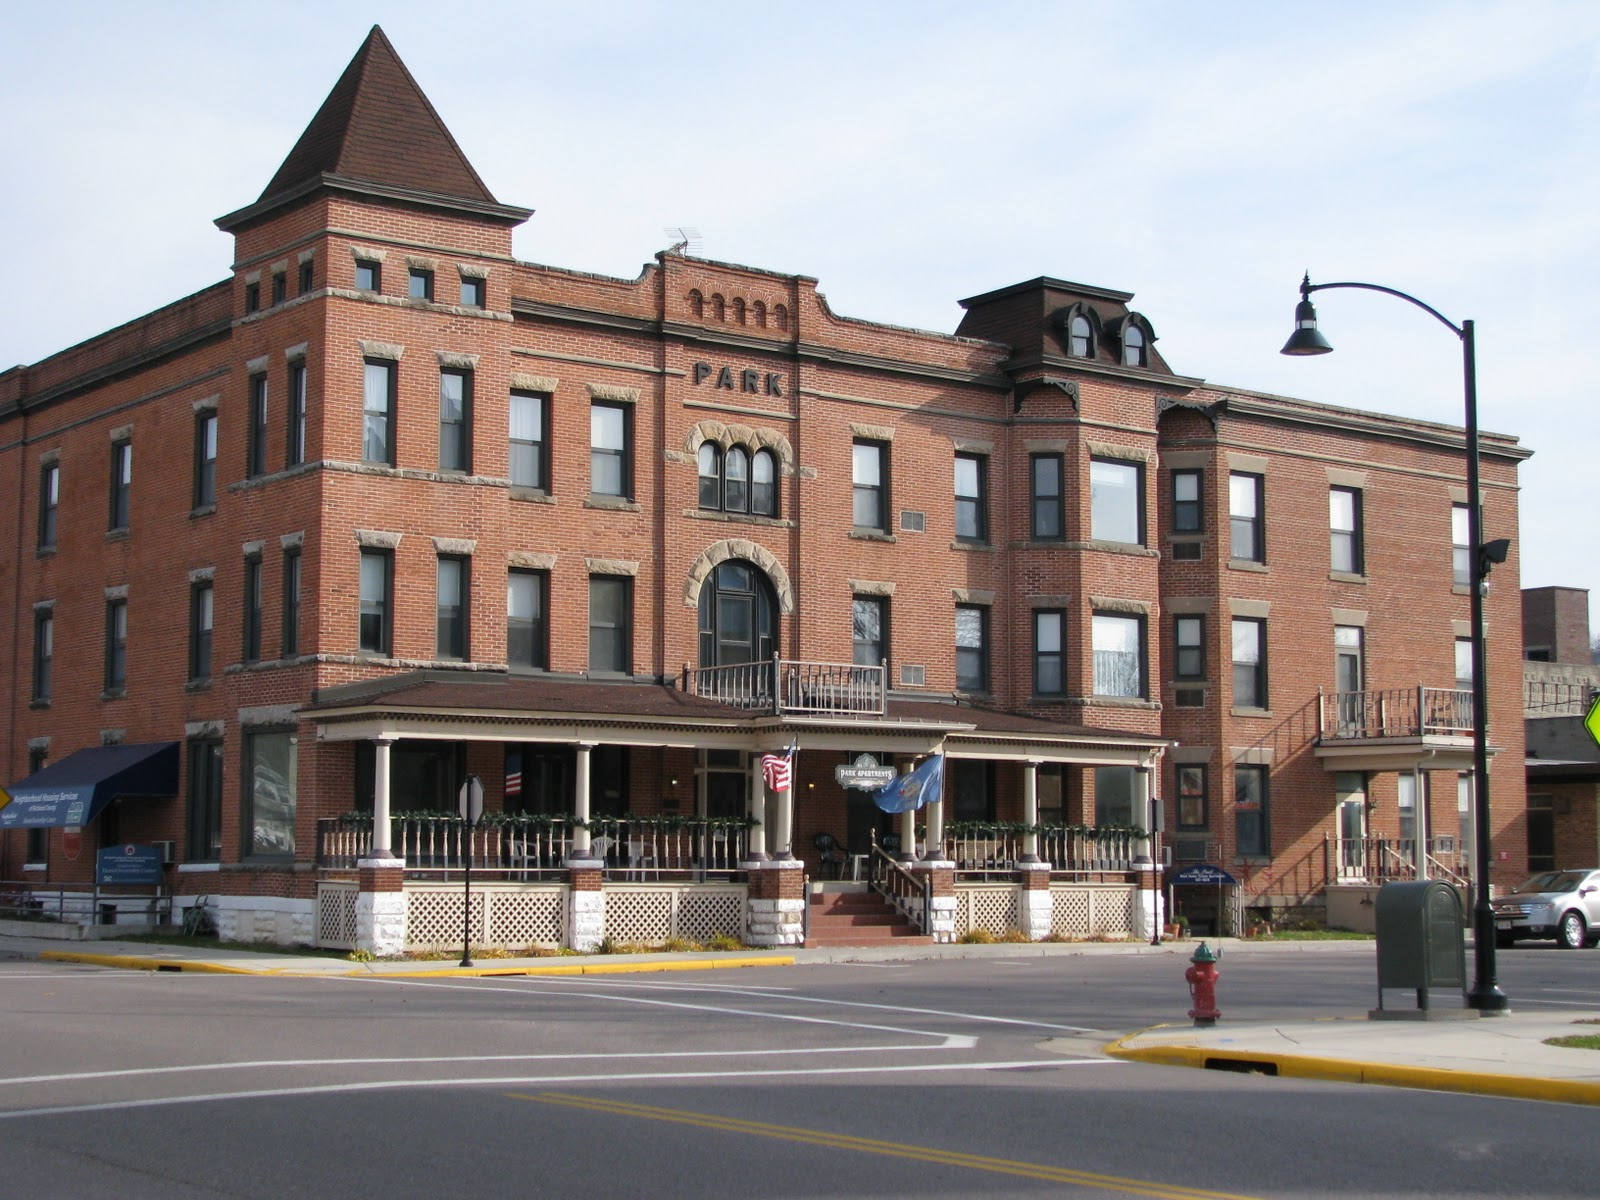 Just For Fun Here S An Old Photo Of Downtown Richland Center From The South This View Above Park Hotel Is Now Apartments